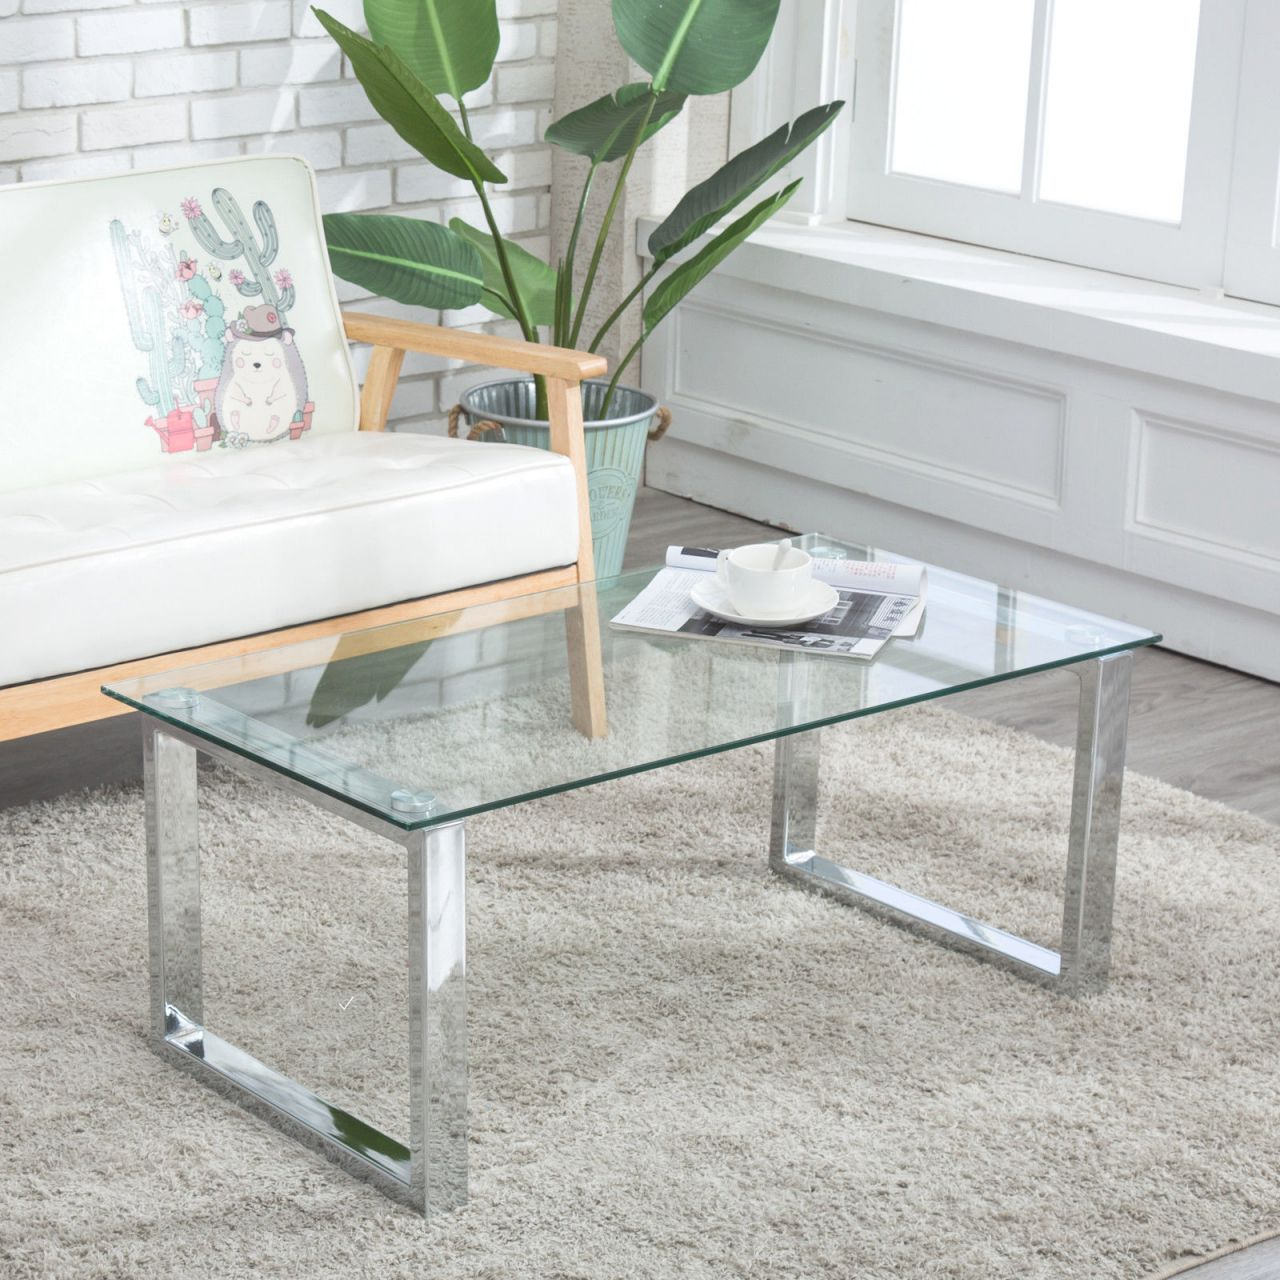 Details About Modern Glass & Stainless Steel Coffee Table Side End Table Living Room Furniture within Unique Living Room Furniture Tables